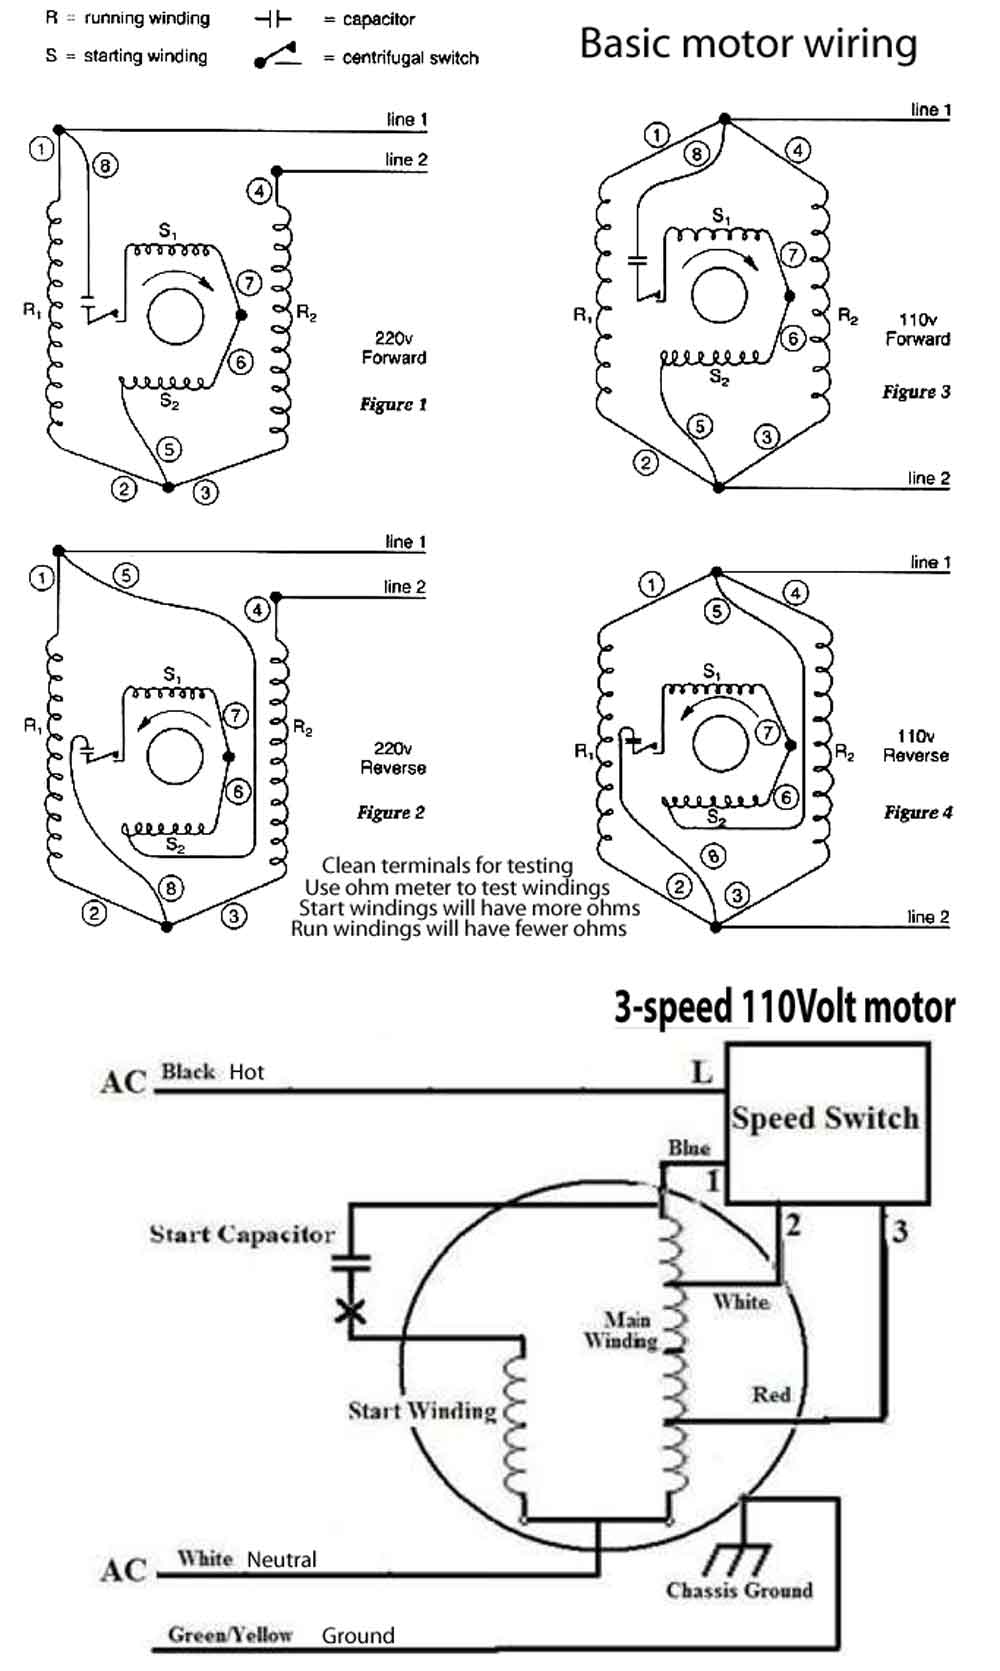 Cooler Motor Wiring Diagram 220v Library Mastercool Swamp Coolers